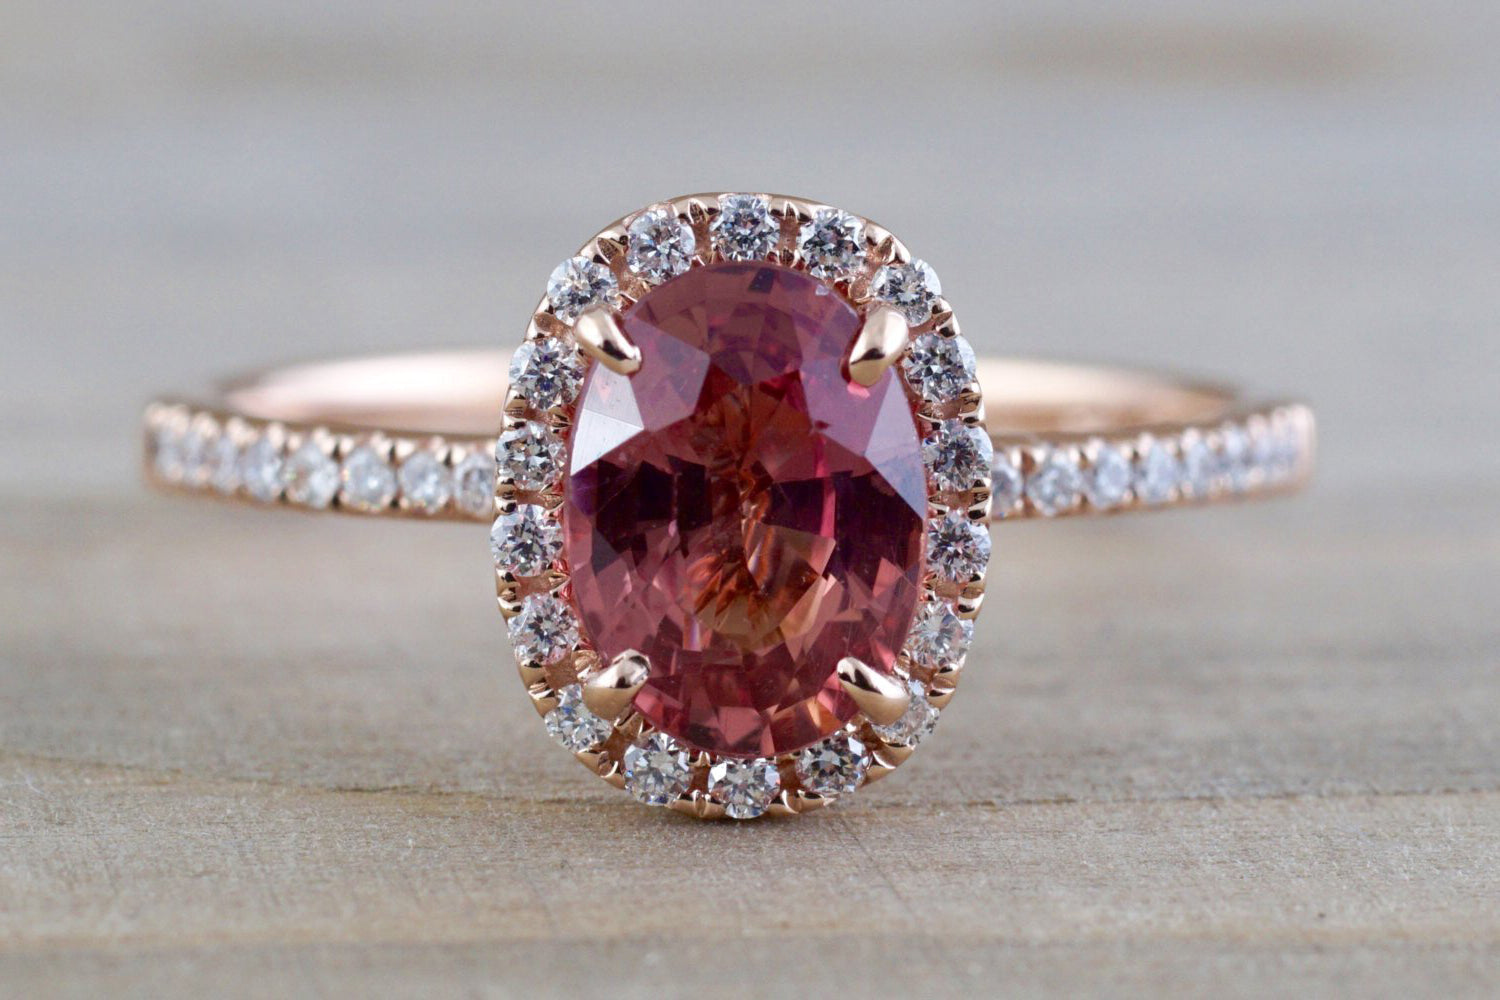 Oval peach sapphire and diamond ring - 2